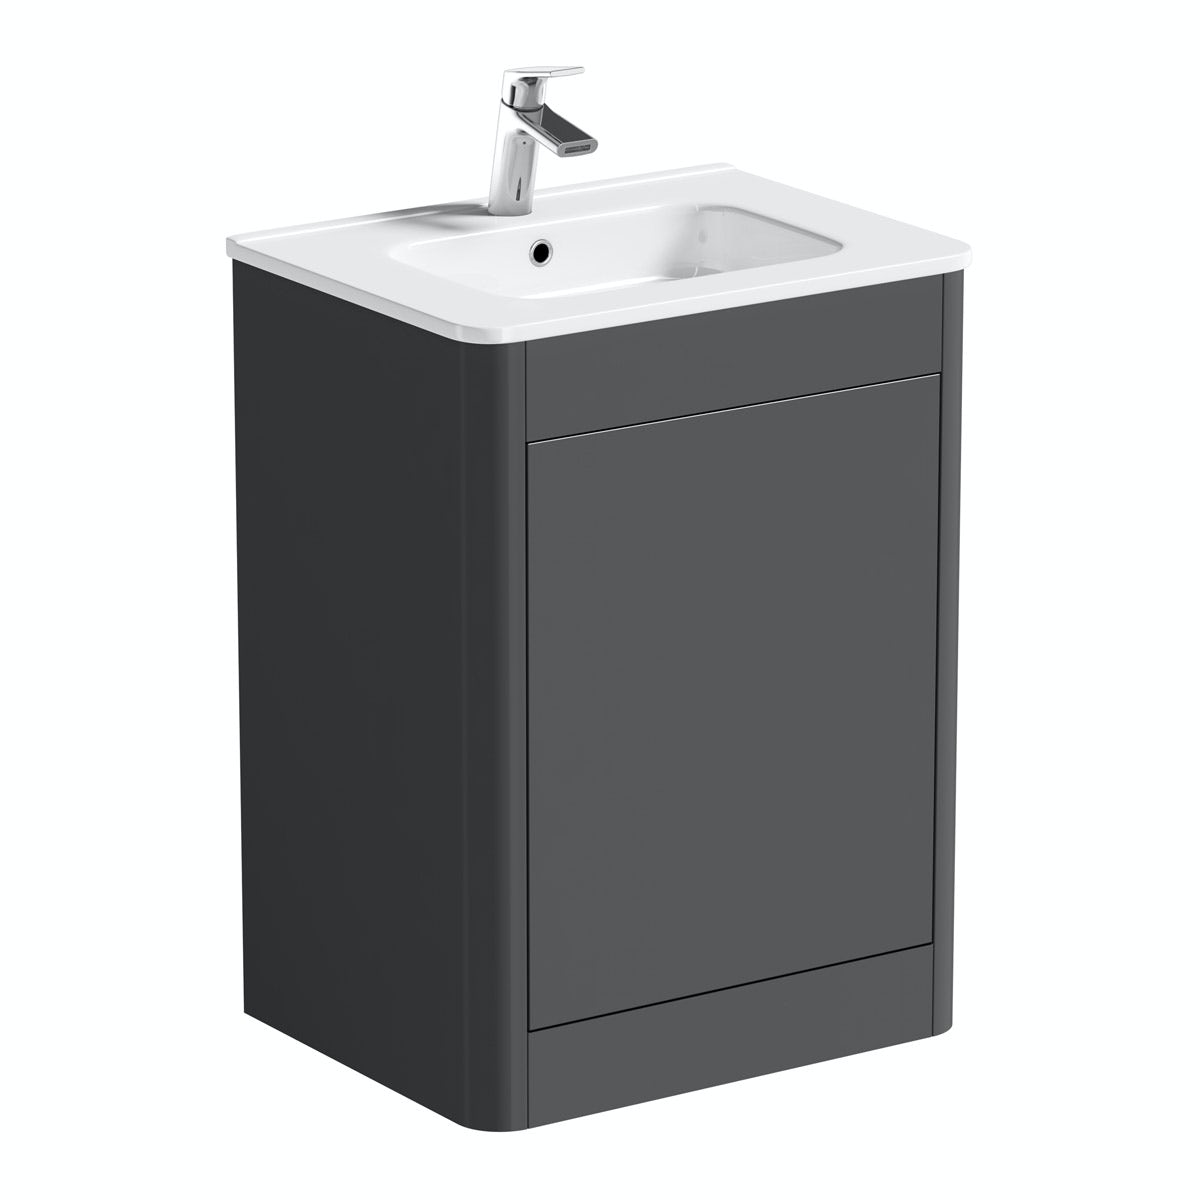 Mode Carter slate grey vanity unit and ceramic basin 600mm